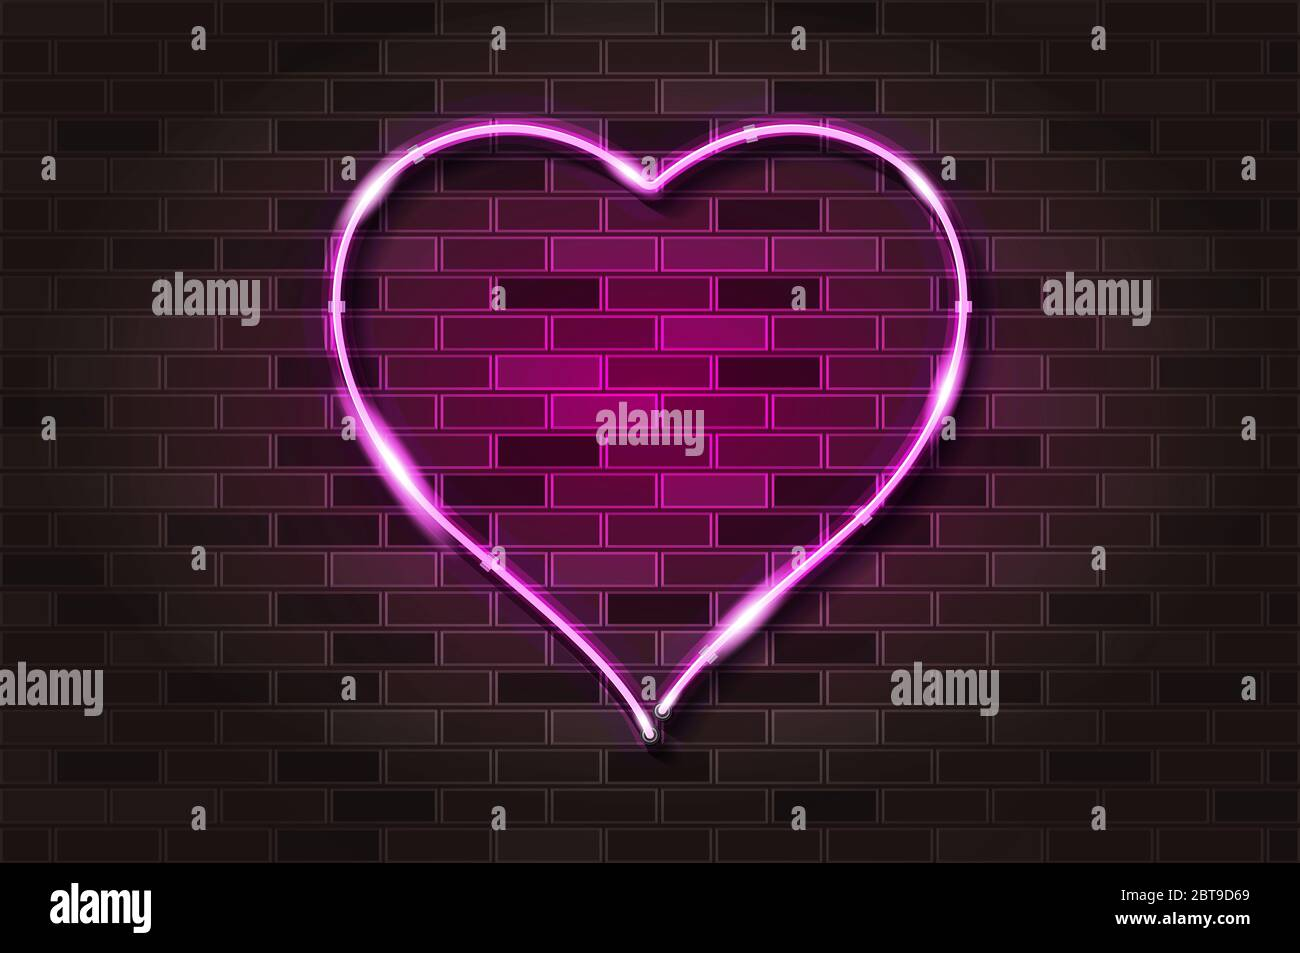 Big Pink Heart Glowing Neon Sign Or Led Strip Light Realistic Illustration Black Brick Wall Soft Shadow Metal Holders Stock Photo Alamy